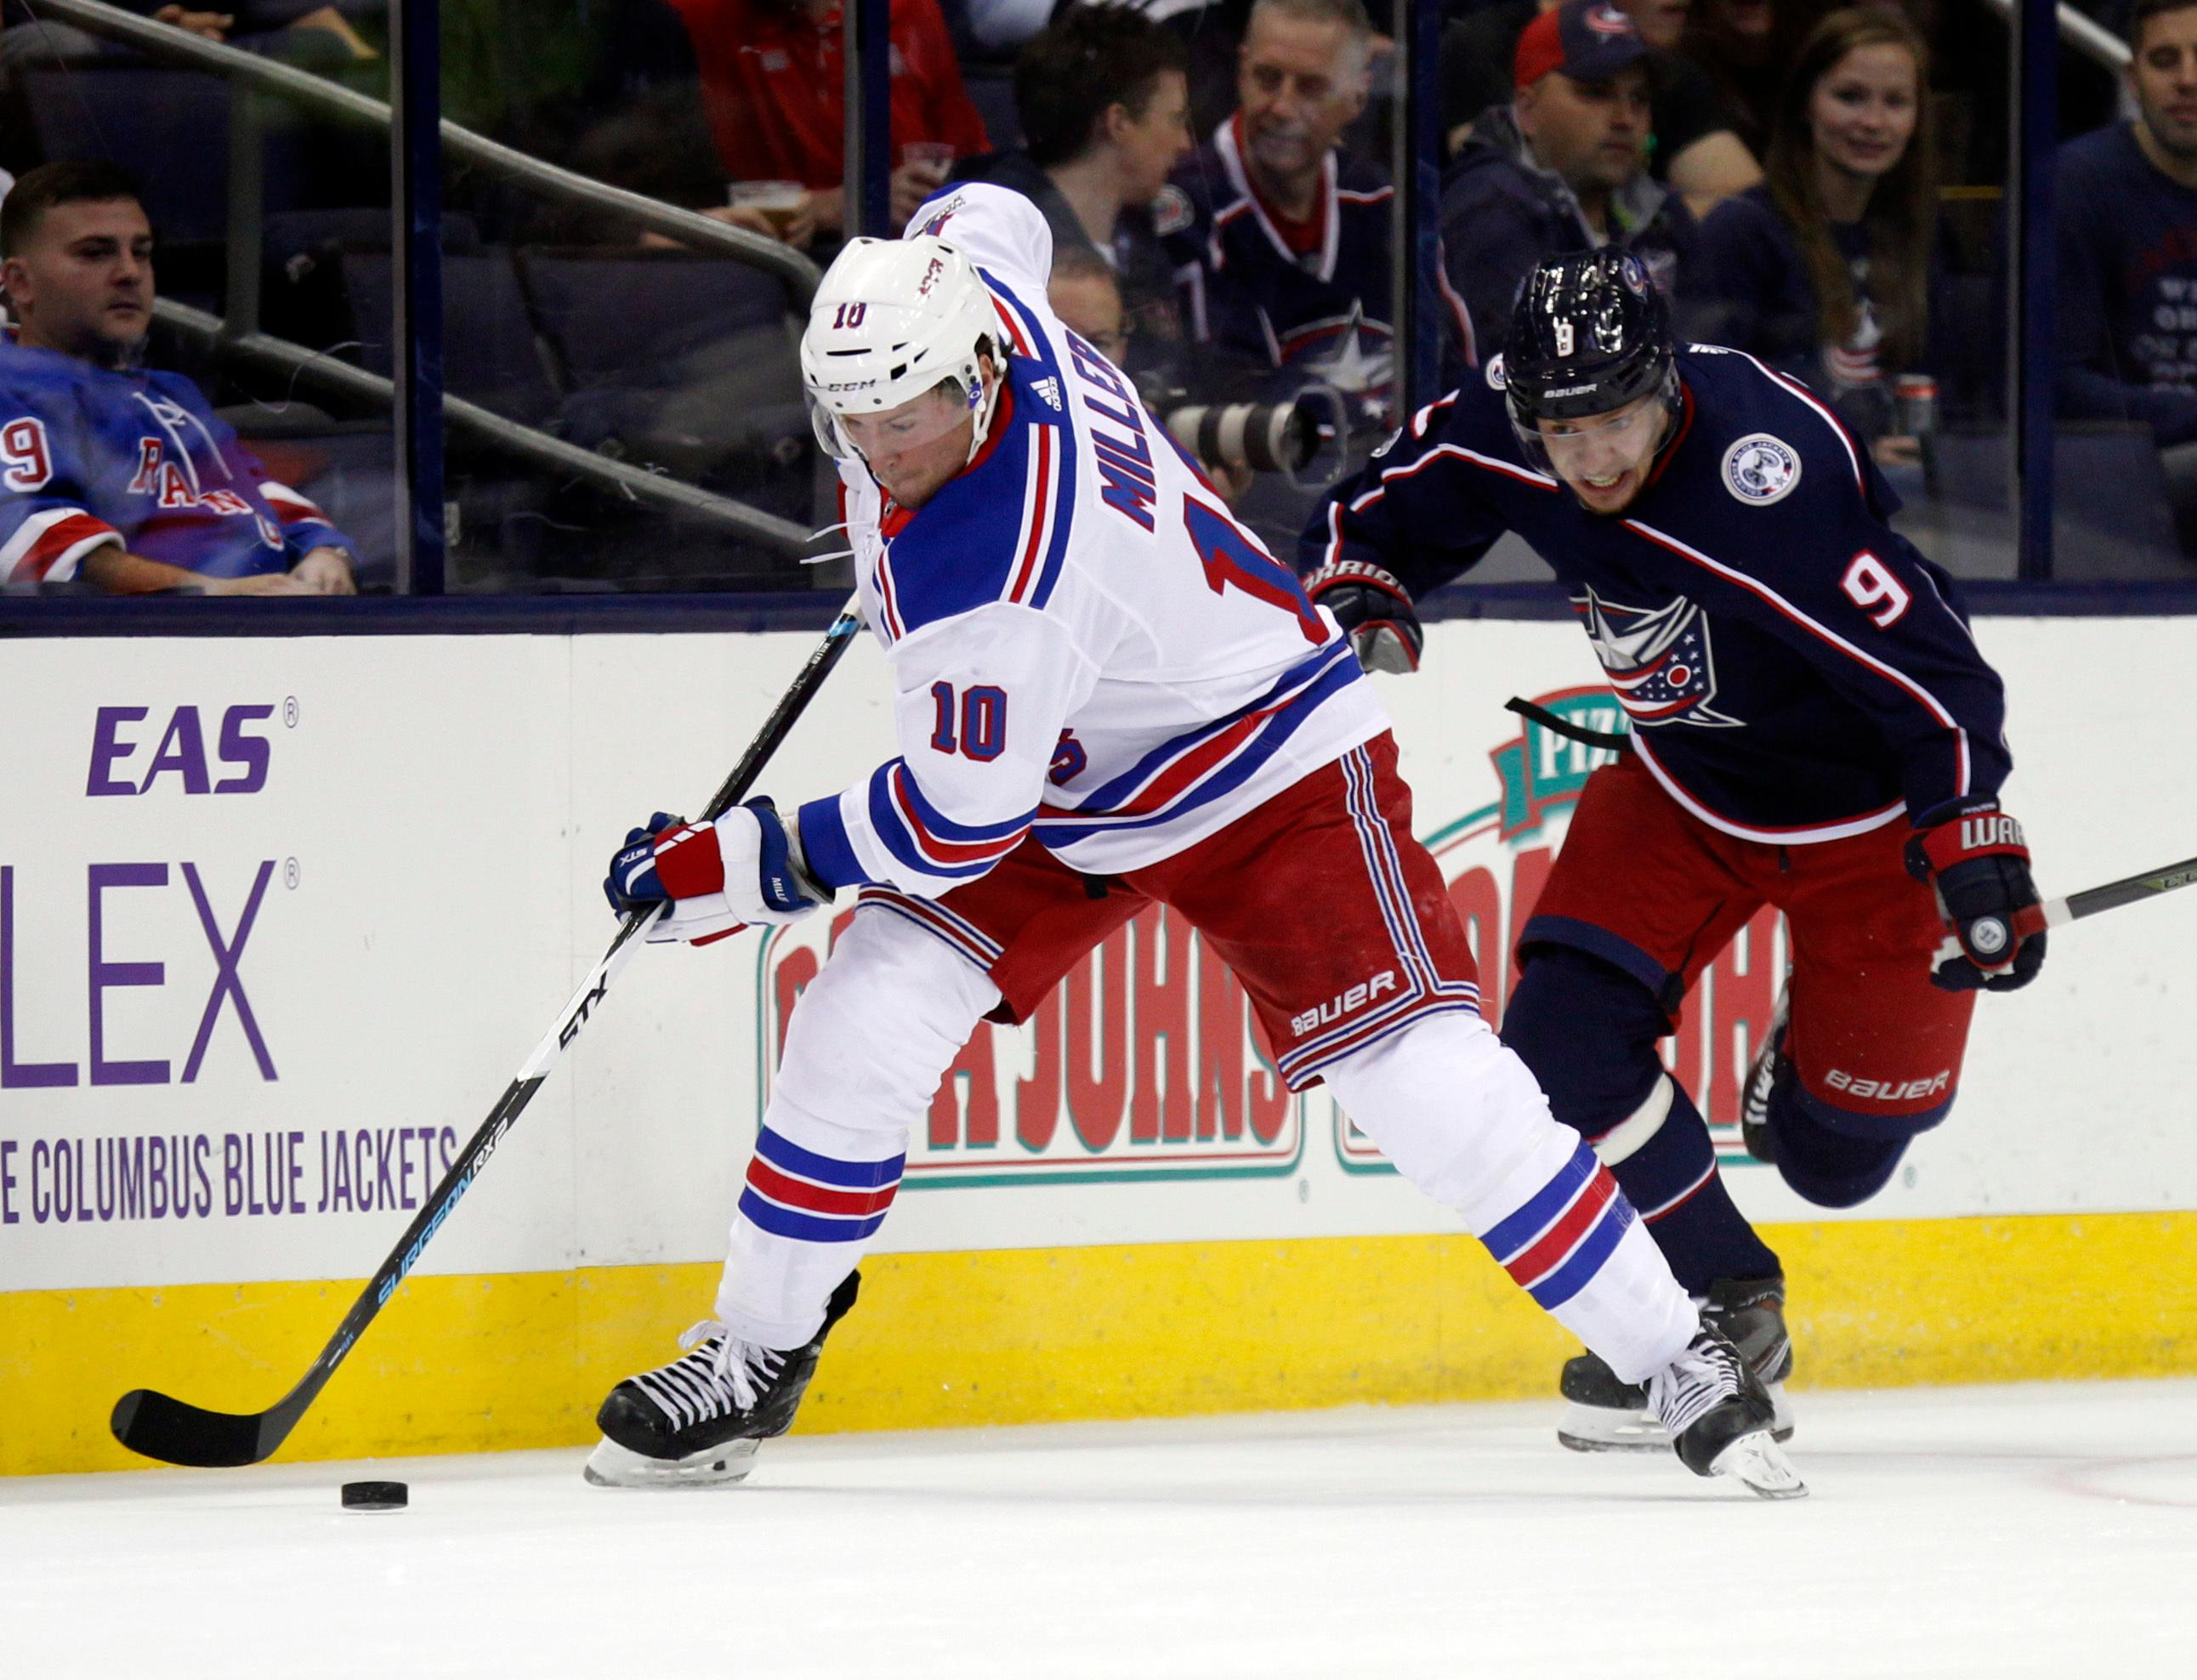 New York Rangers forward J.T. Miller, left, works for the puck against Columbus Blue Jackets forward Artemi Panarin, of Russia, during the first period of an NHL hockey game in Columbus, Ohio, Friday, Oct. 13, 2017. (AP Photo/Paul Vernon)